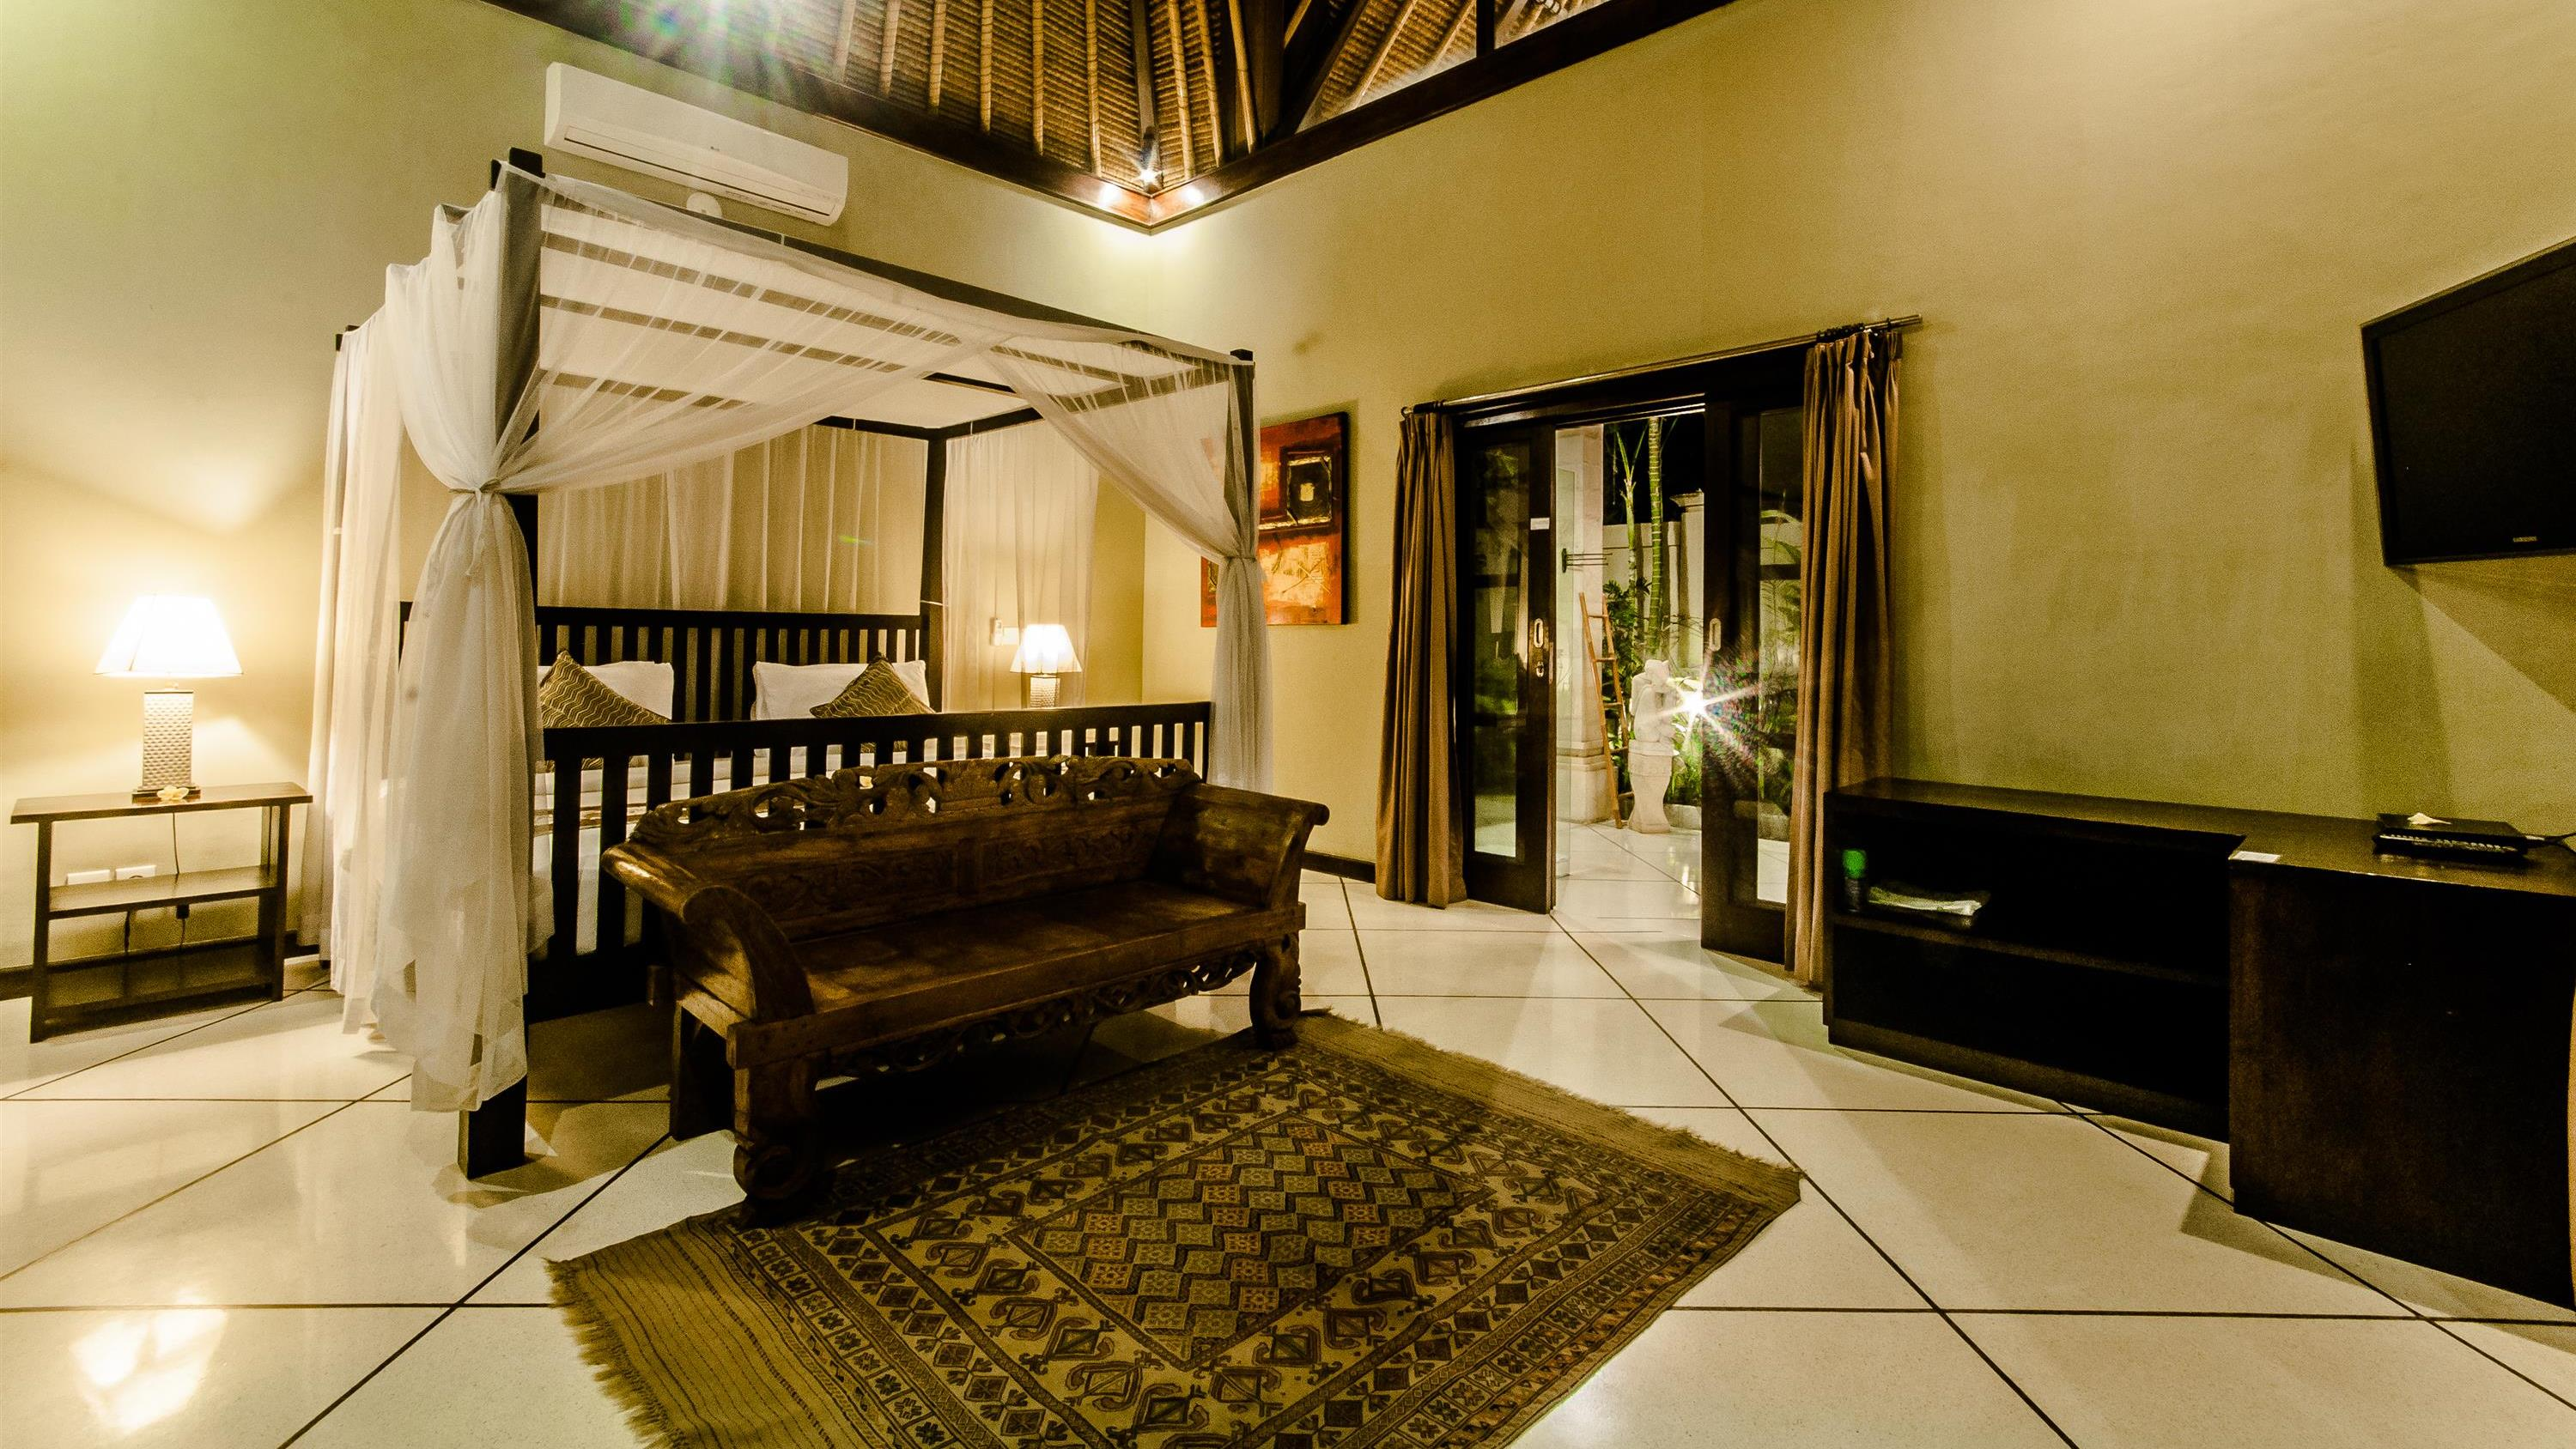 Bedroom with Sofa and TV at Night - Villa Kebun - Seminyak, Bali